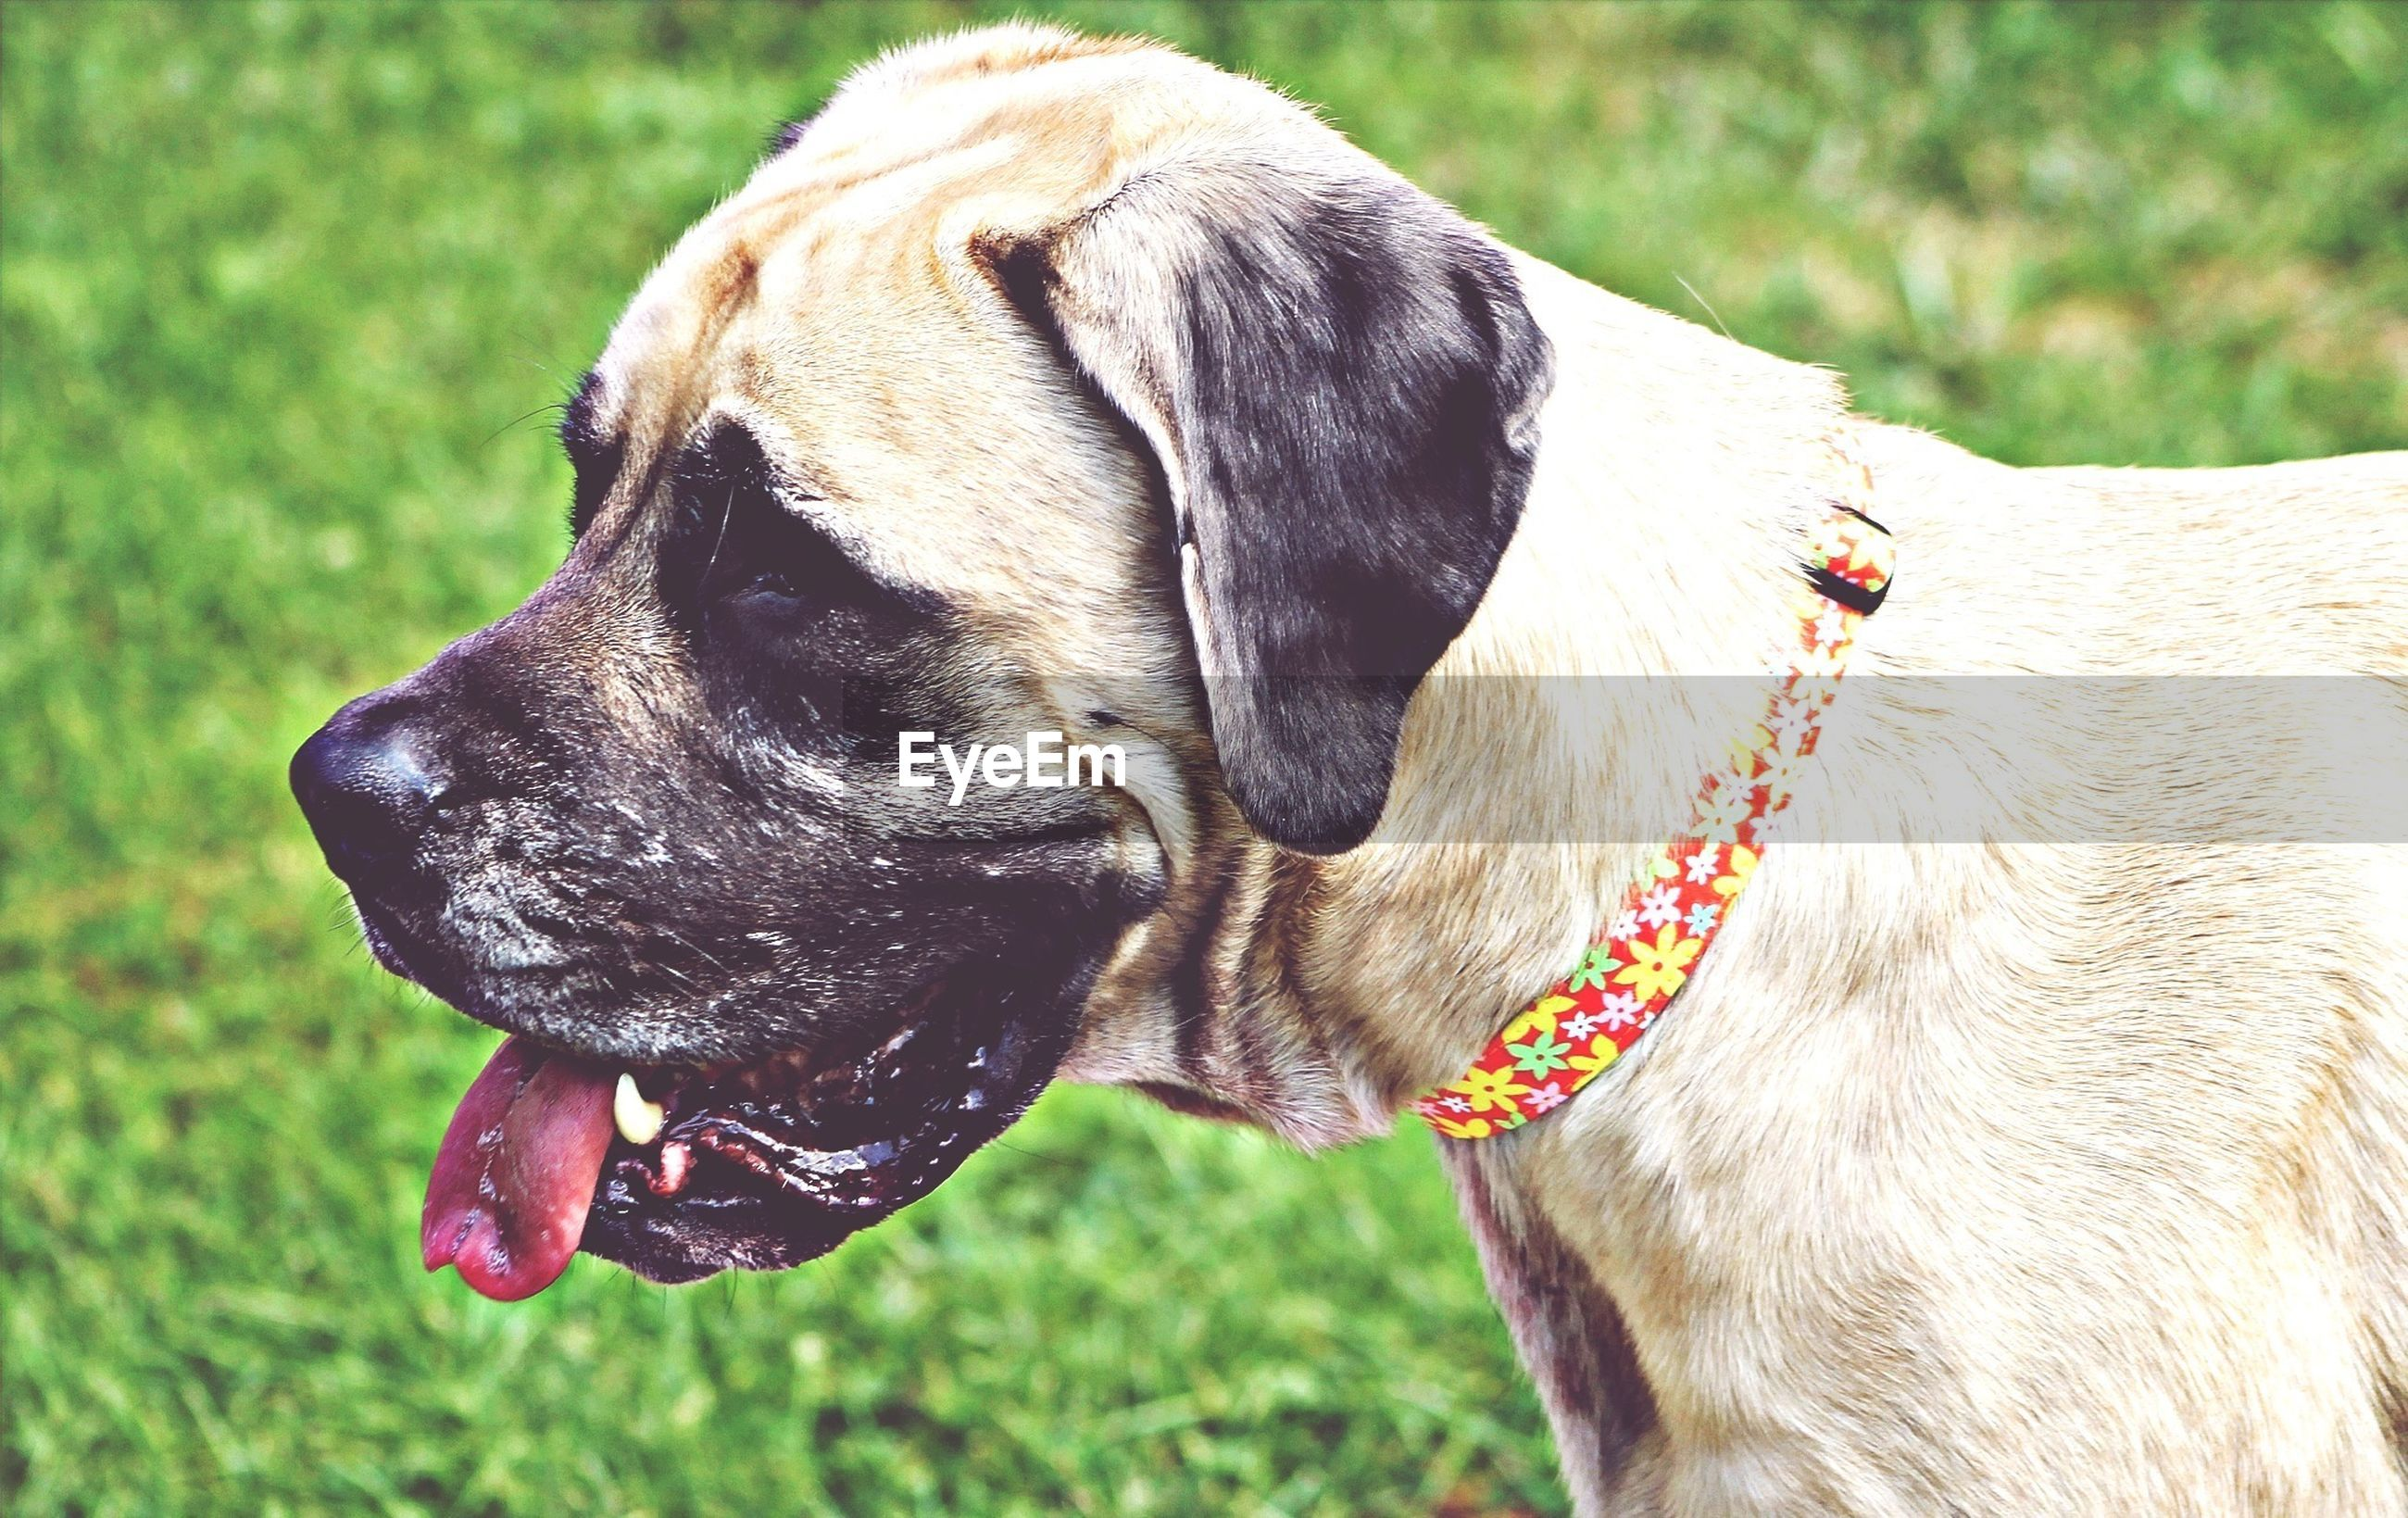 animal themes, one animal, domestic animals, mammal, horse, animal head, focus on foreground, close-up, field, animal body part, livestock, dog, working animal, herbivorous, grass, day, outdoors, part of, nature, standing